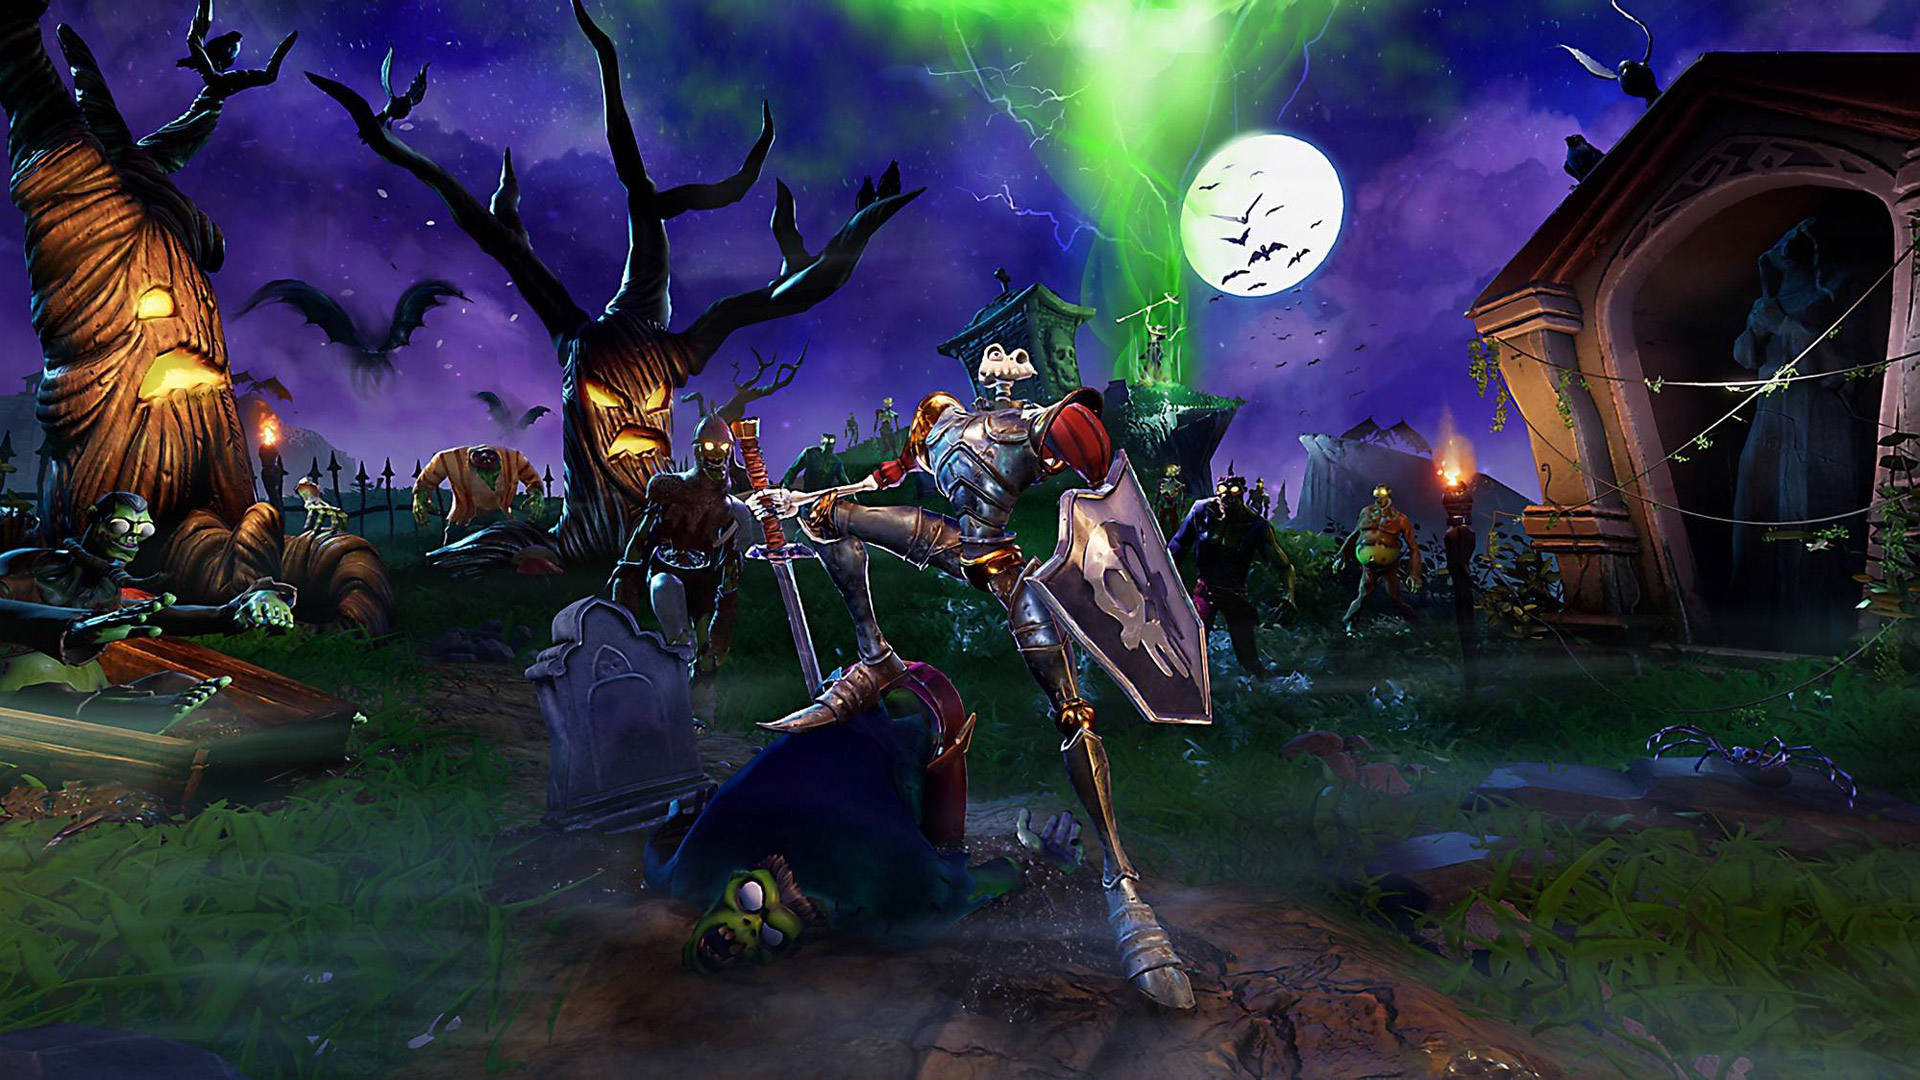 Free MediEvil Wallpaper in 1920x1080